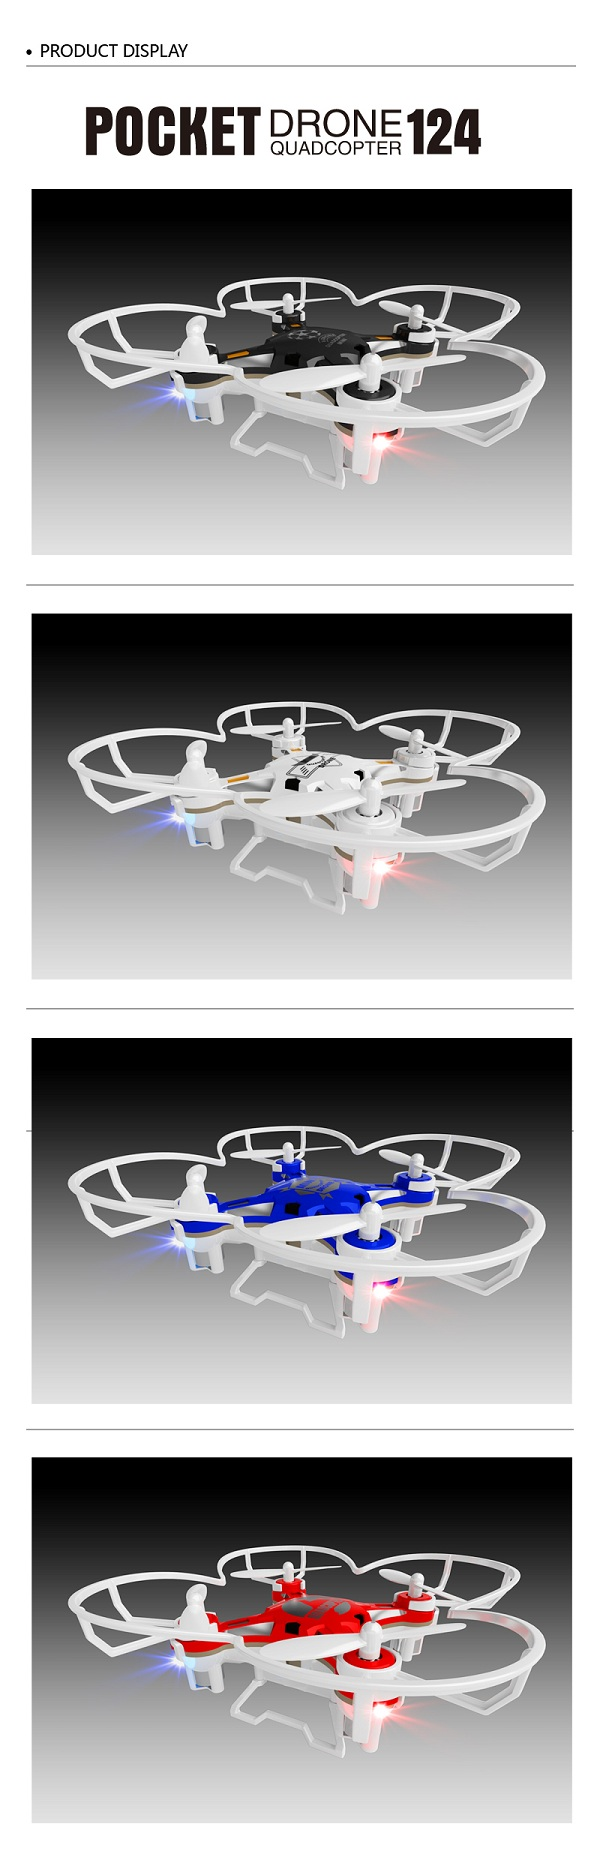 SBEGO_124_Mini_Pocket_Drone_FQ777-124_4CH_6Axis_Gyro_Quadcopter_With_Switchable_Controller_RTF_Free_Spare_Part_Give_09